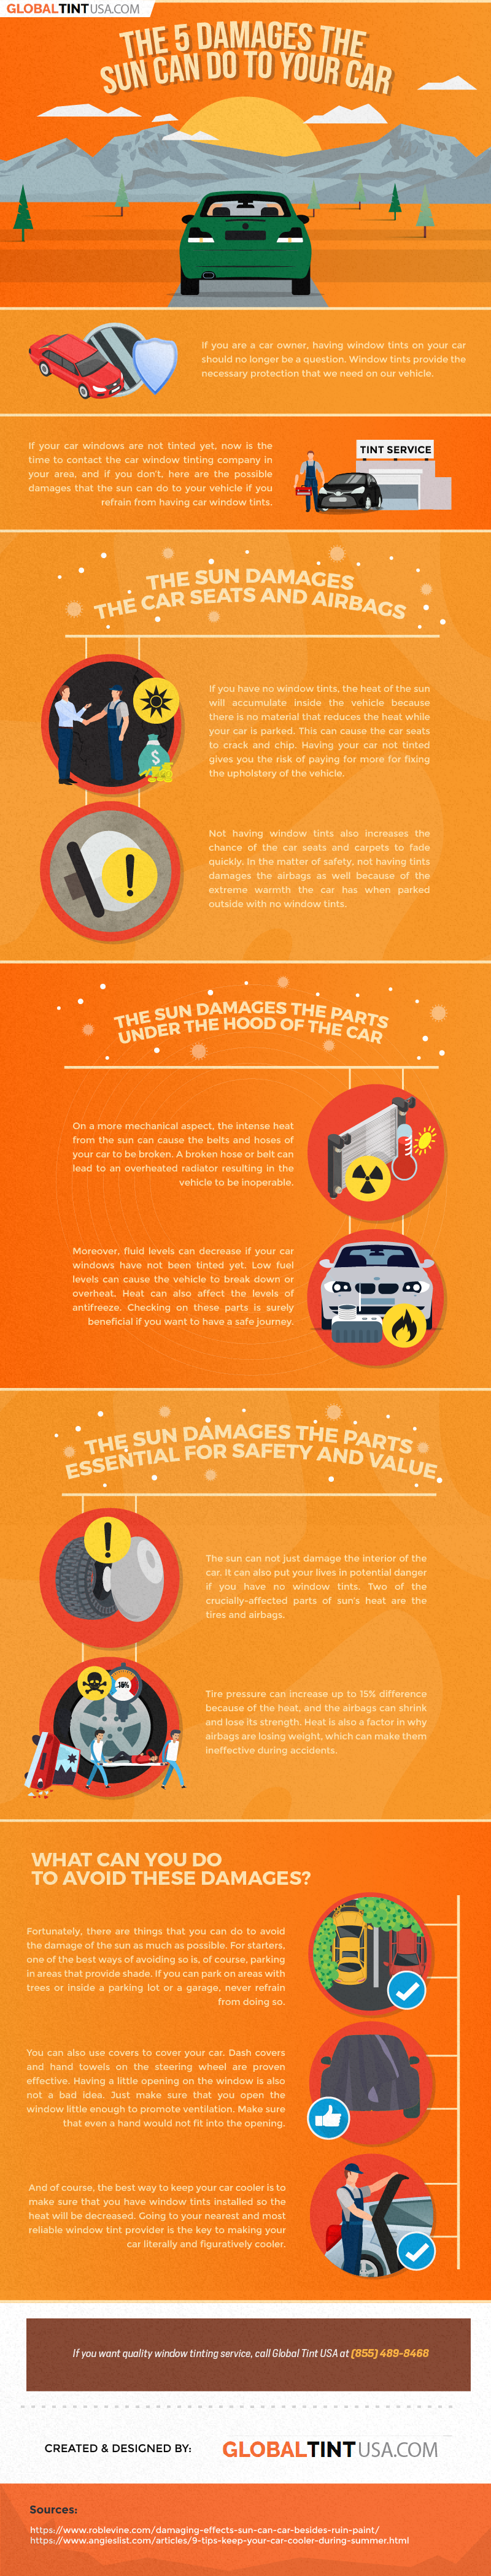 The 5 damages the sun can do to your car 01